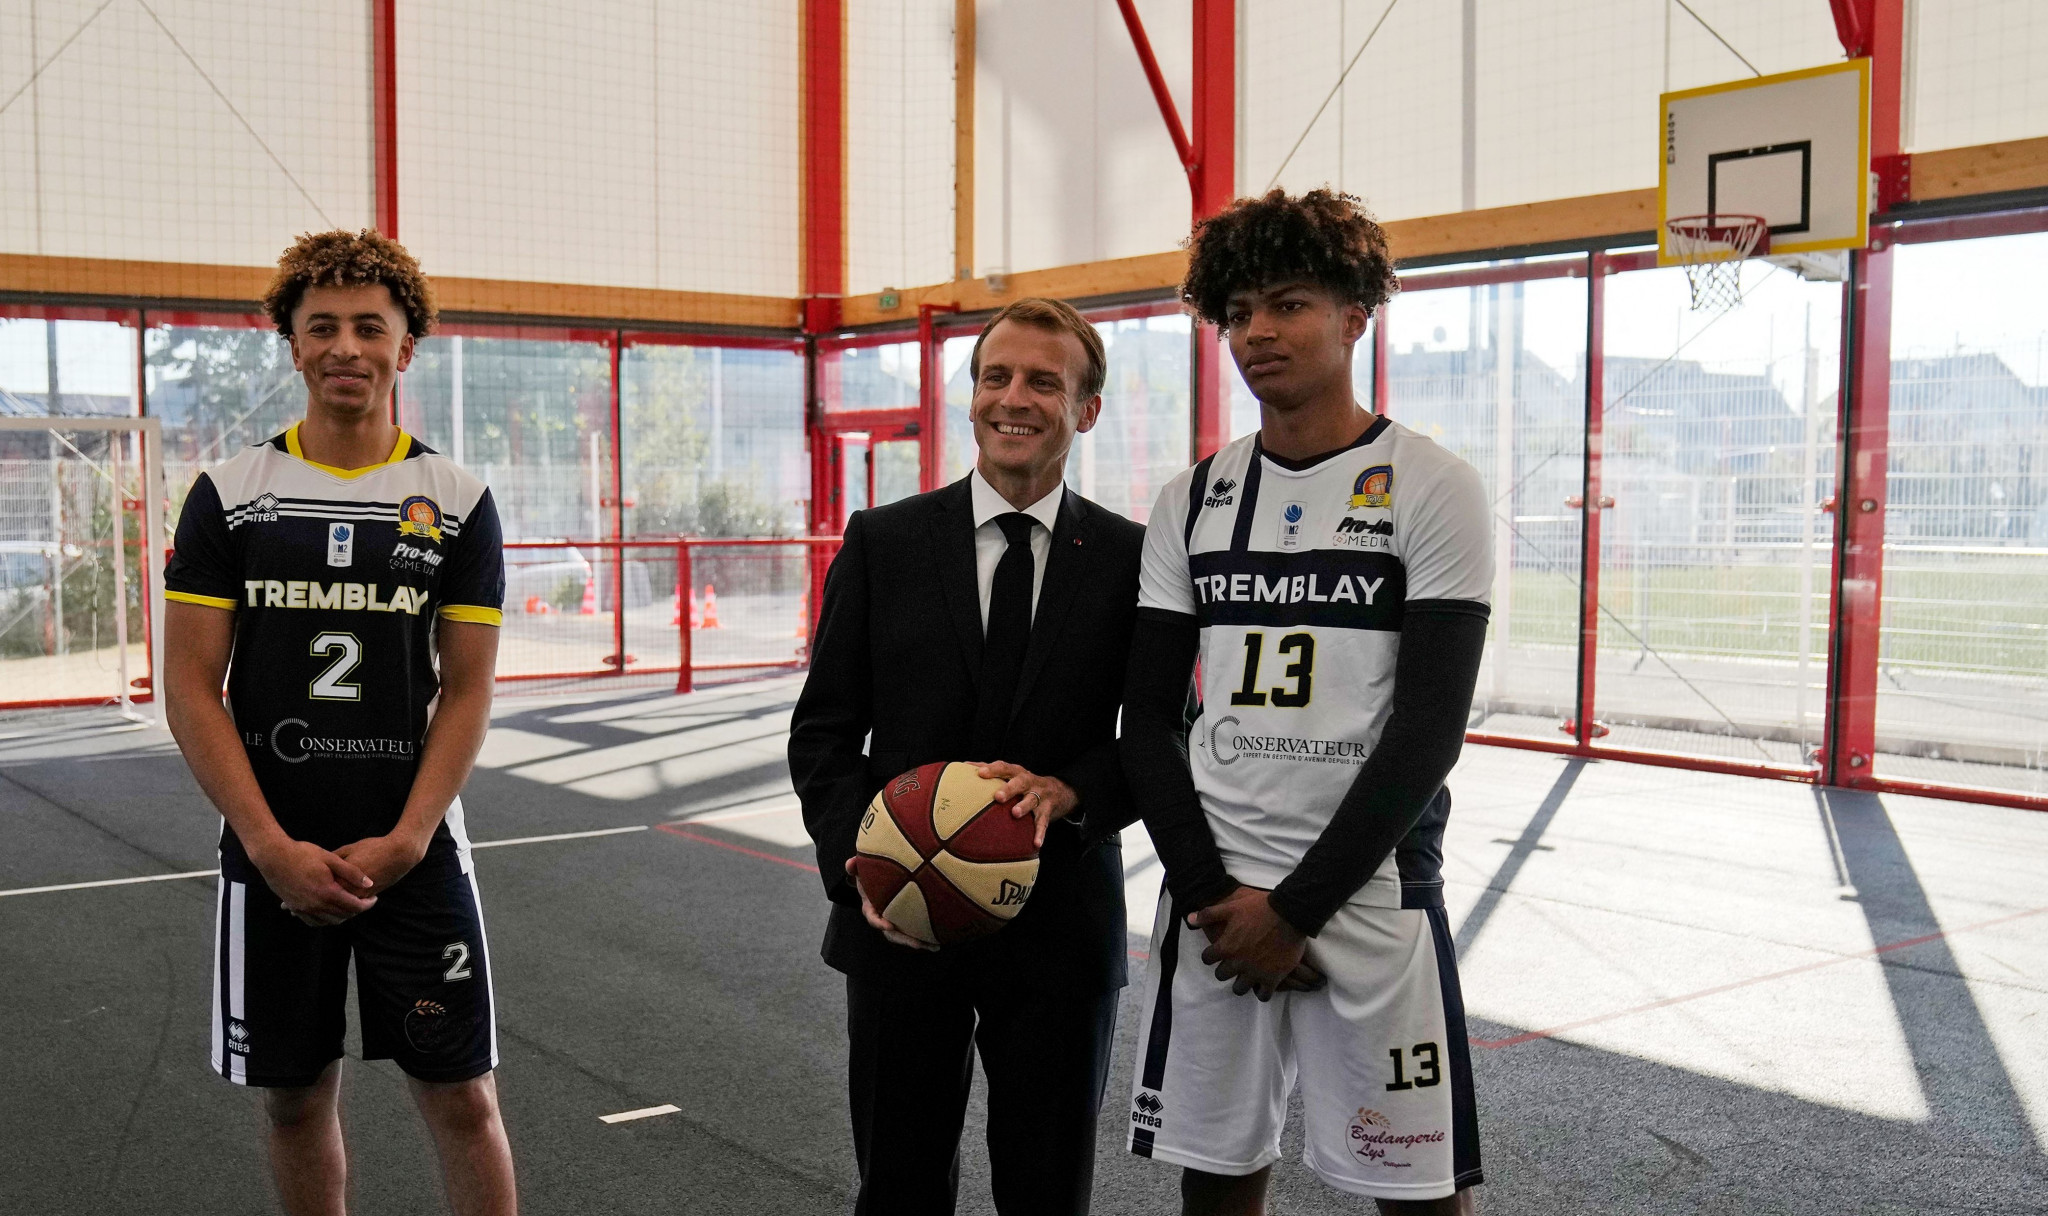 Macron visits Paris 2024 venues and details plan to build thousands of local sporting facilities